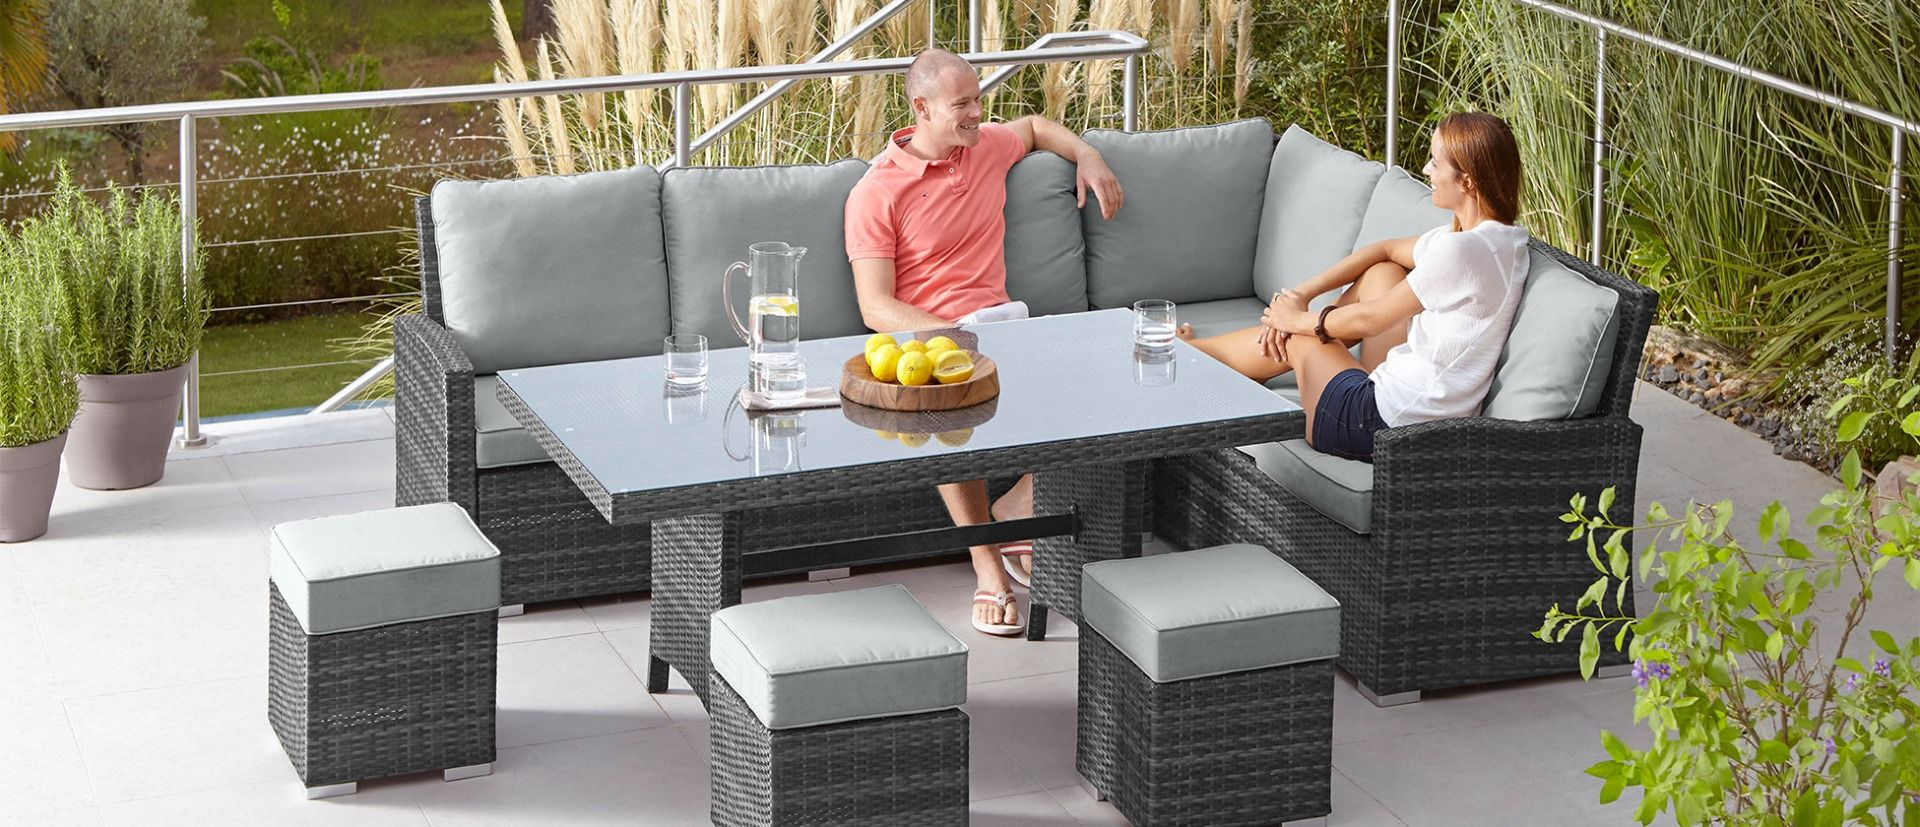 rattan patio table and chairs> OFF 9